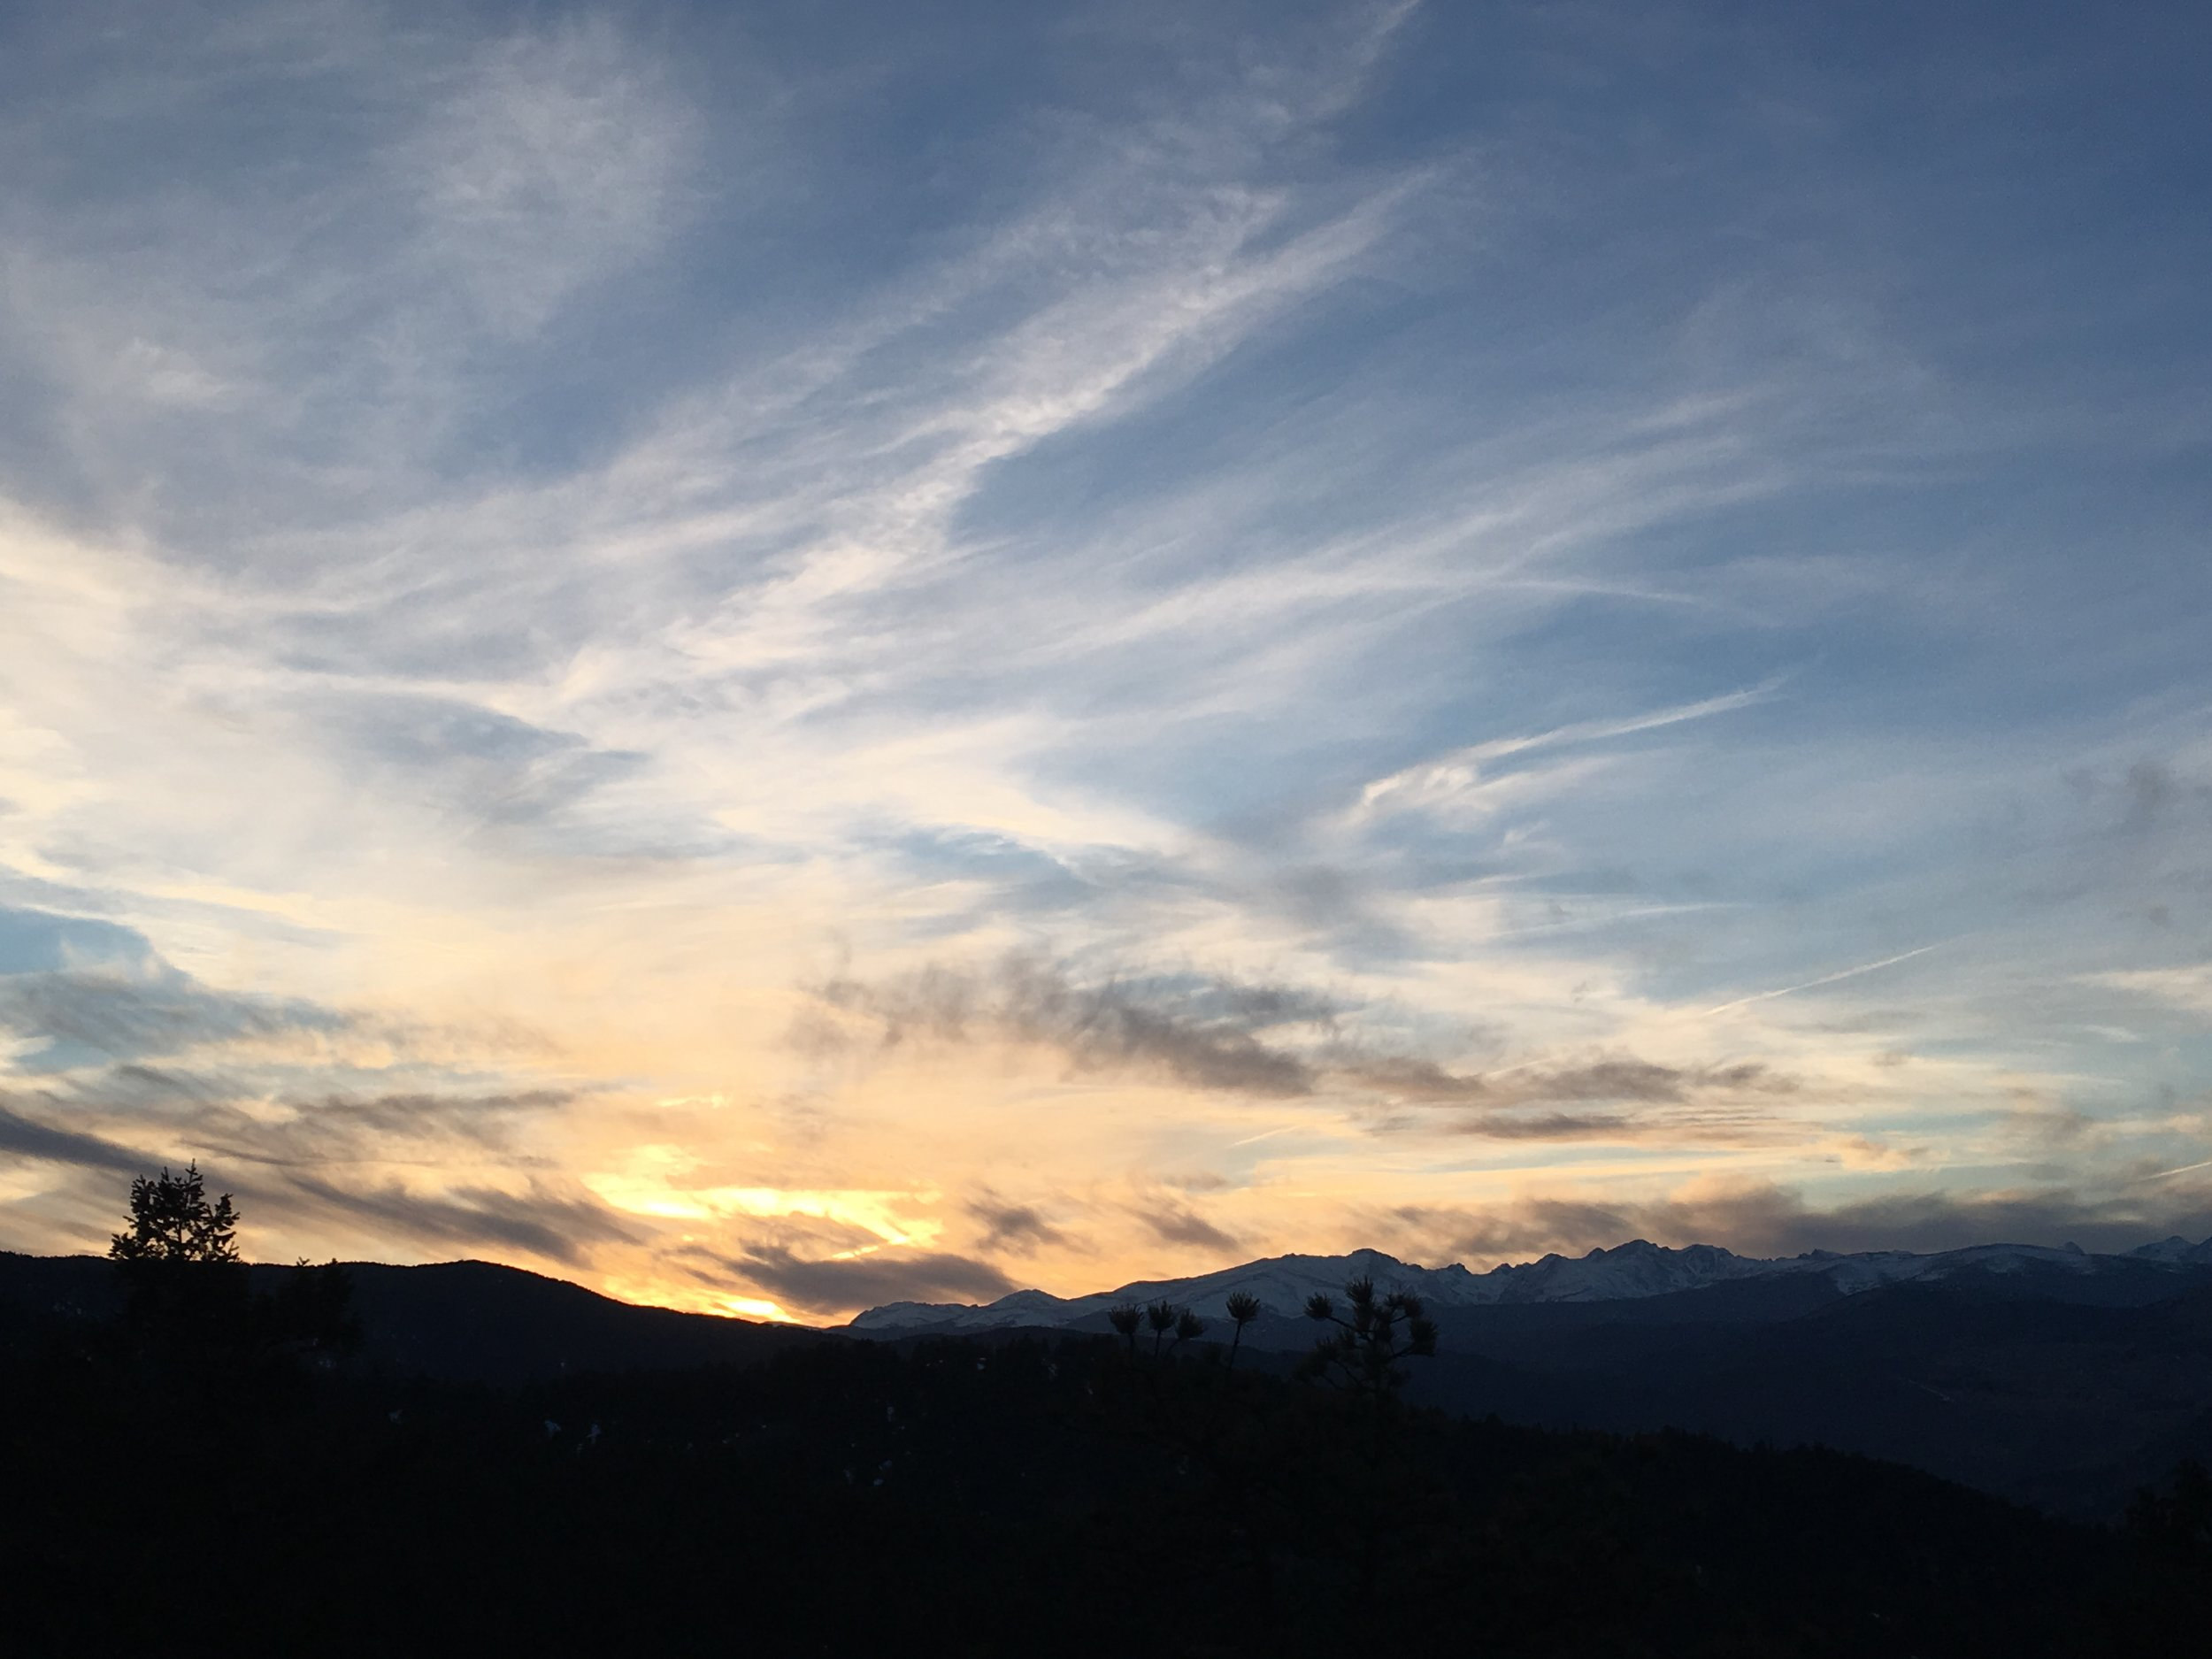 Lost gulch lookout sunset.